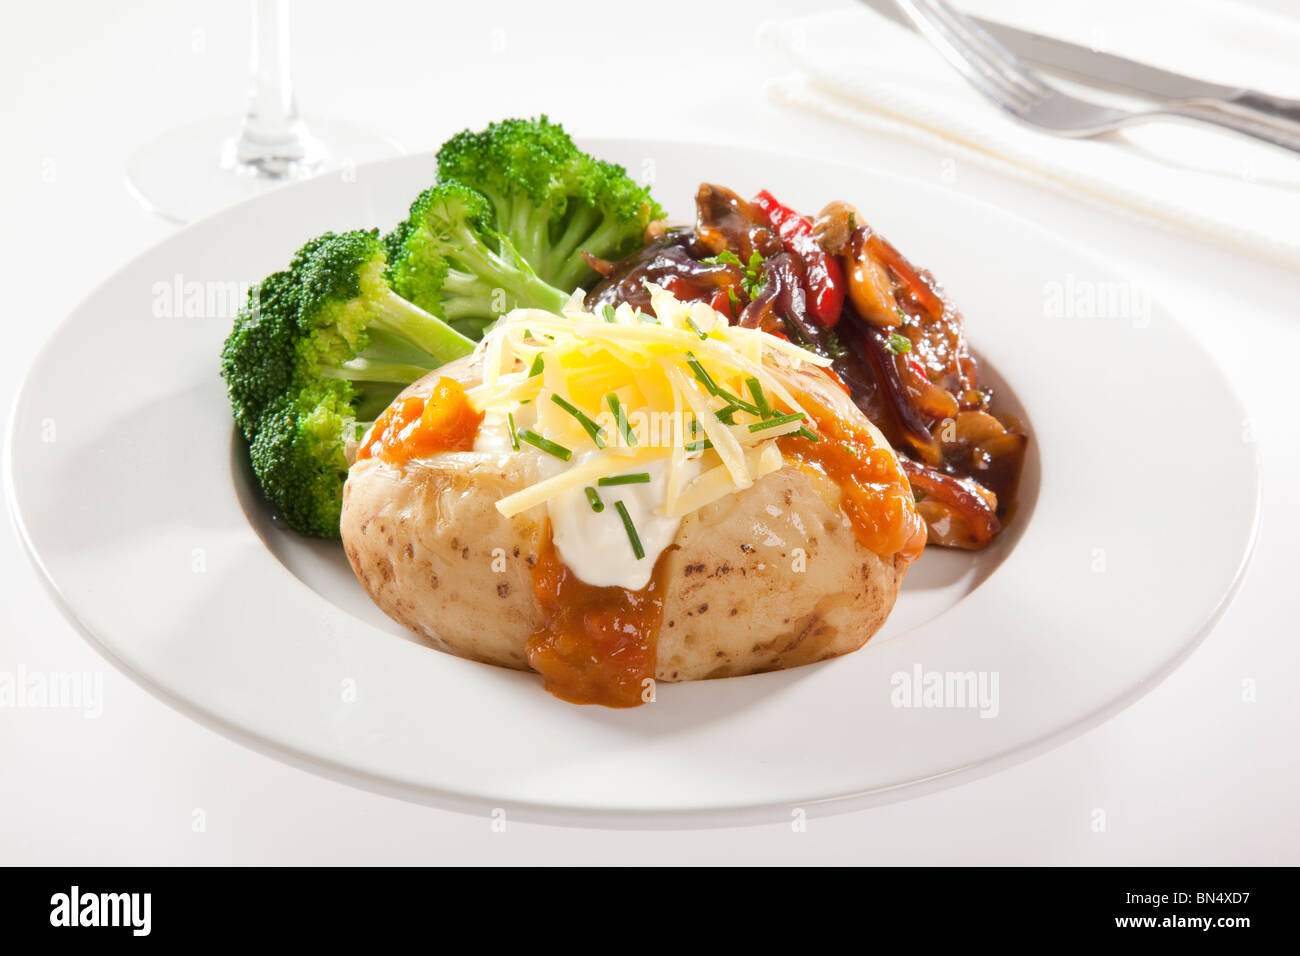 Baked Potato with steak and broccoli - Stock Image